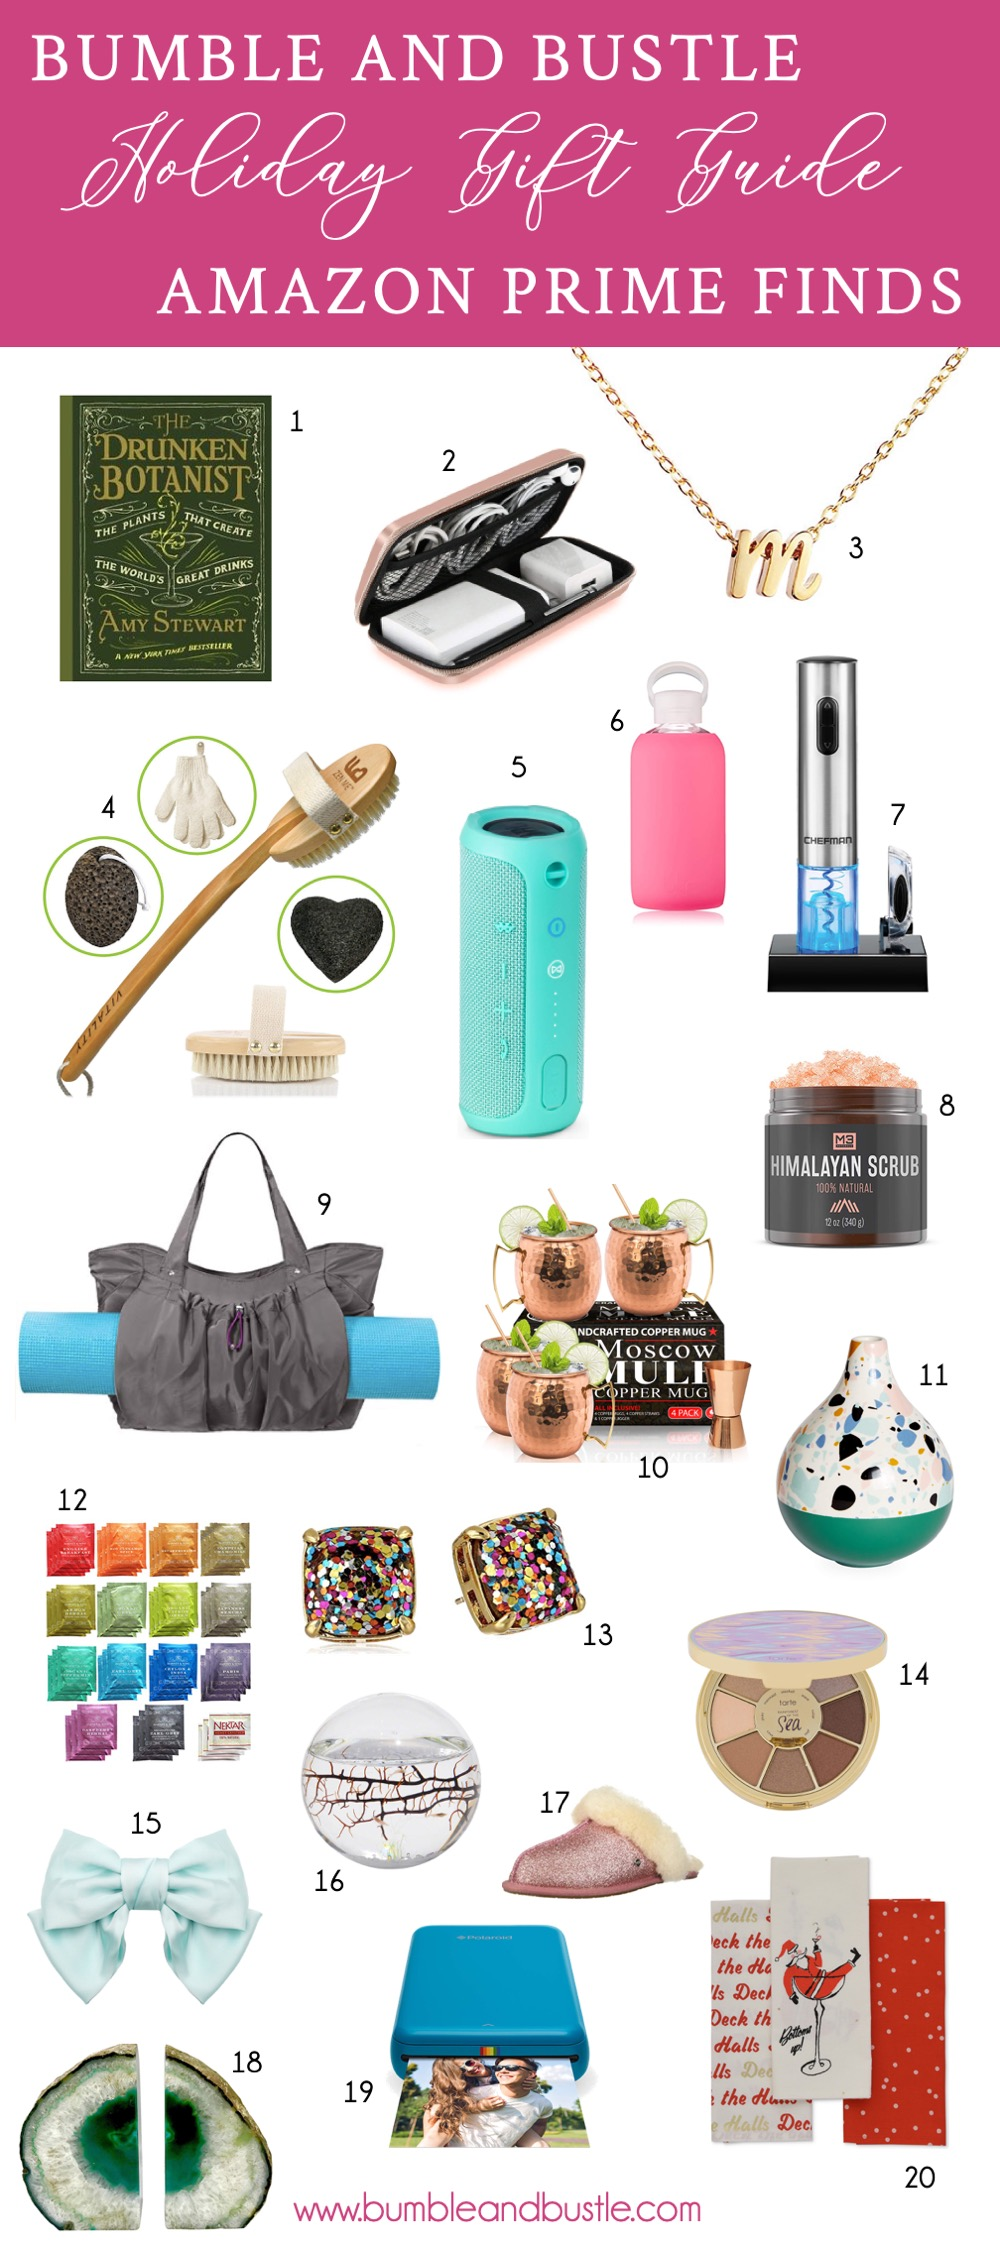 20 Great Gift Ideas On Amazon By Bumble And Bustle